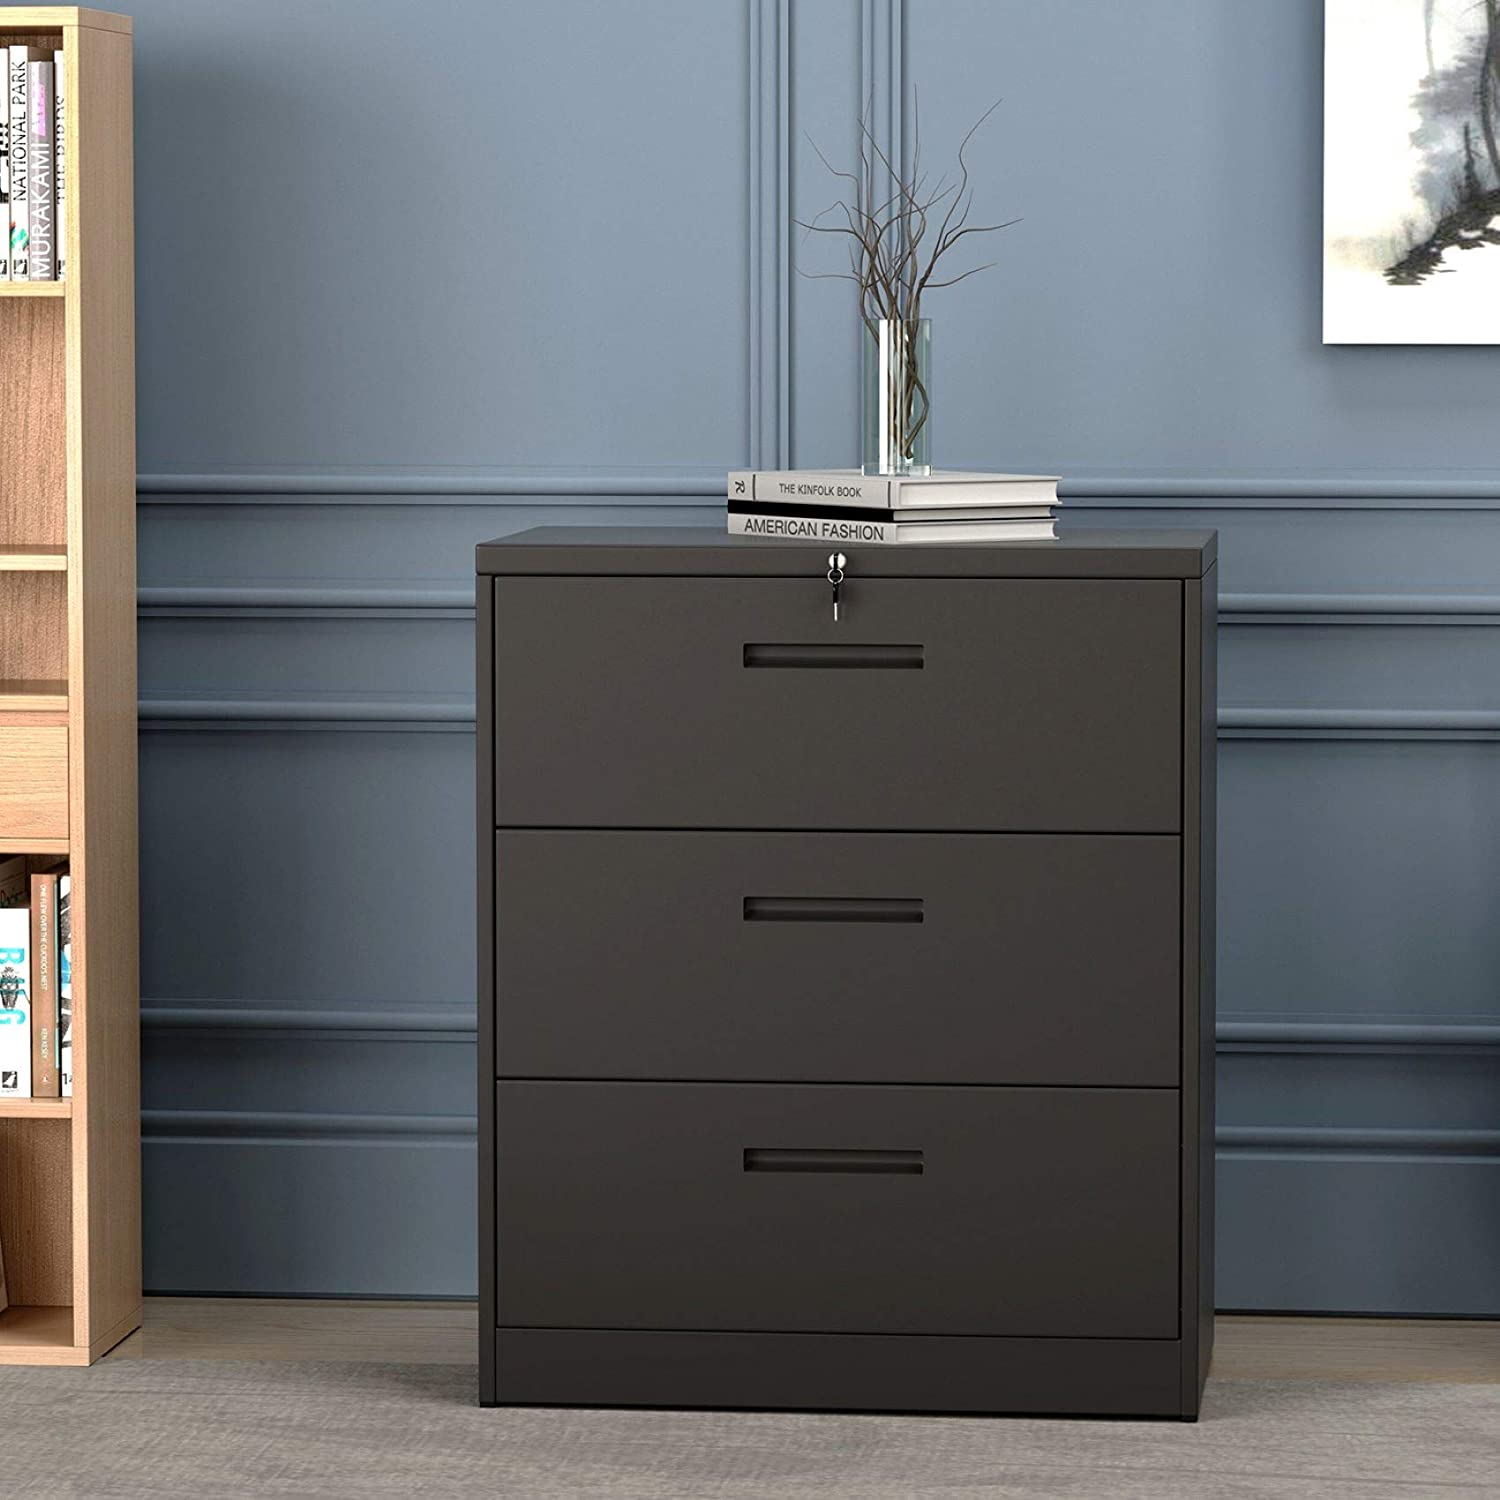 Lateral File Cabinet 3 Drawers with Lock Heavy Duty Metal File Cabinets with Drawers Not Assembled Black 35.4L /×17.7W /×40.3H Black